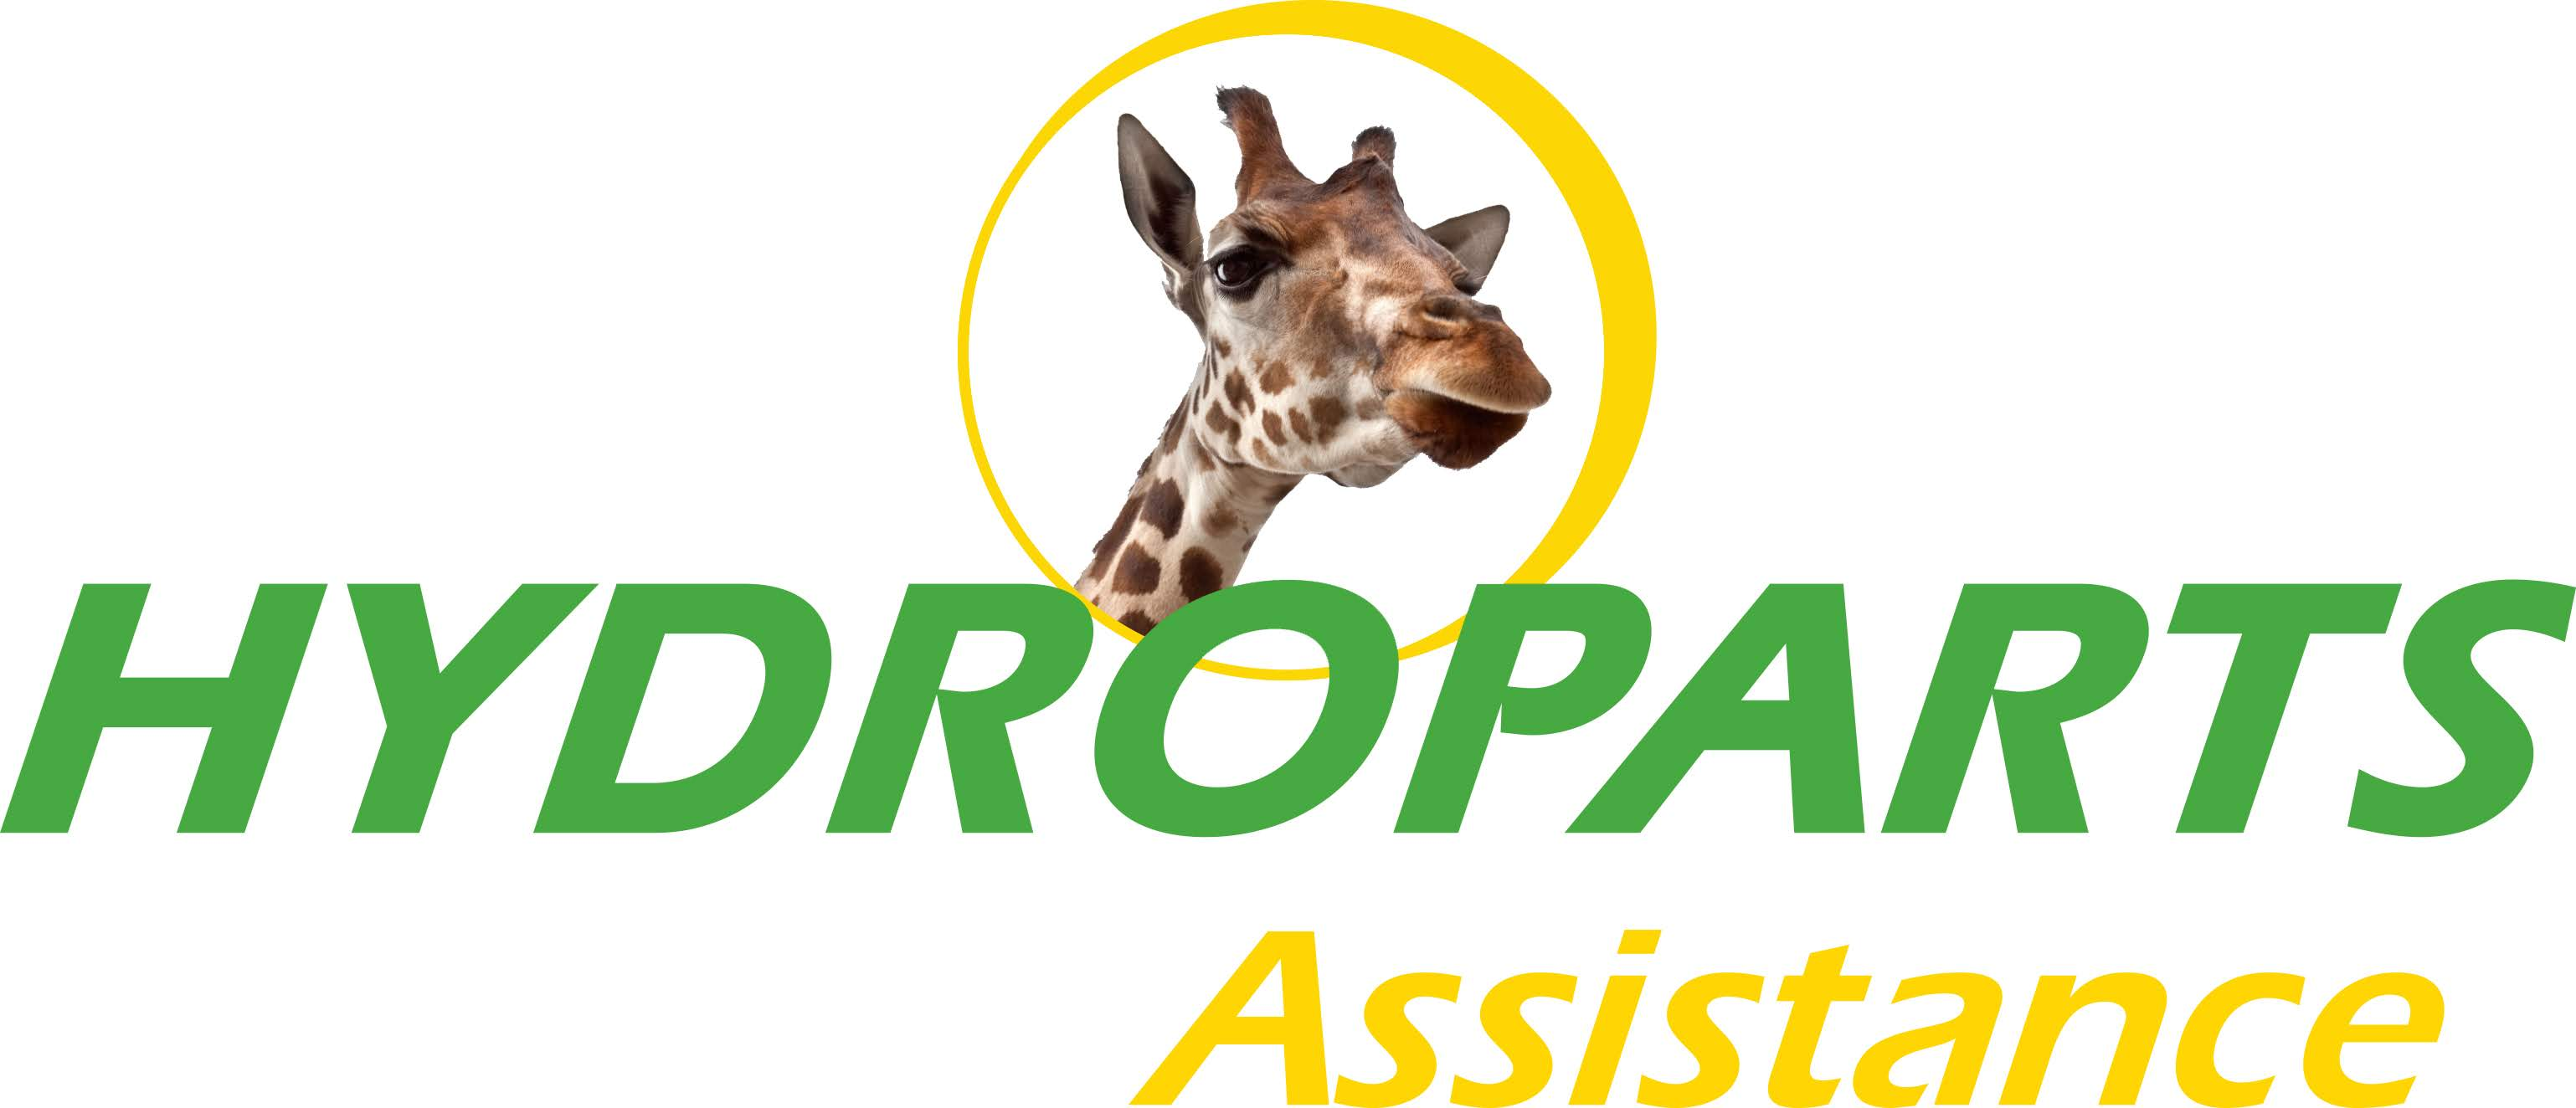 HYDROPARTS-Assistance-logo-20192